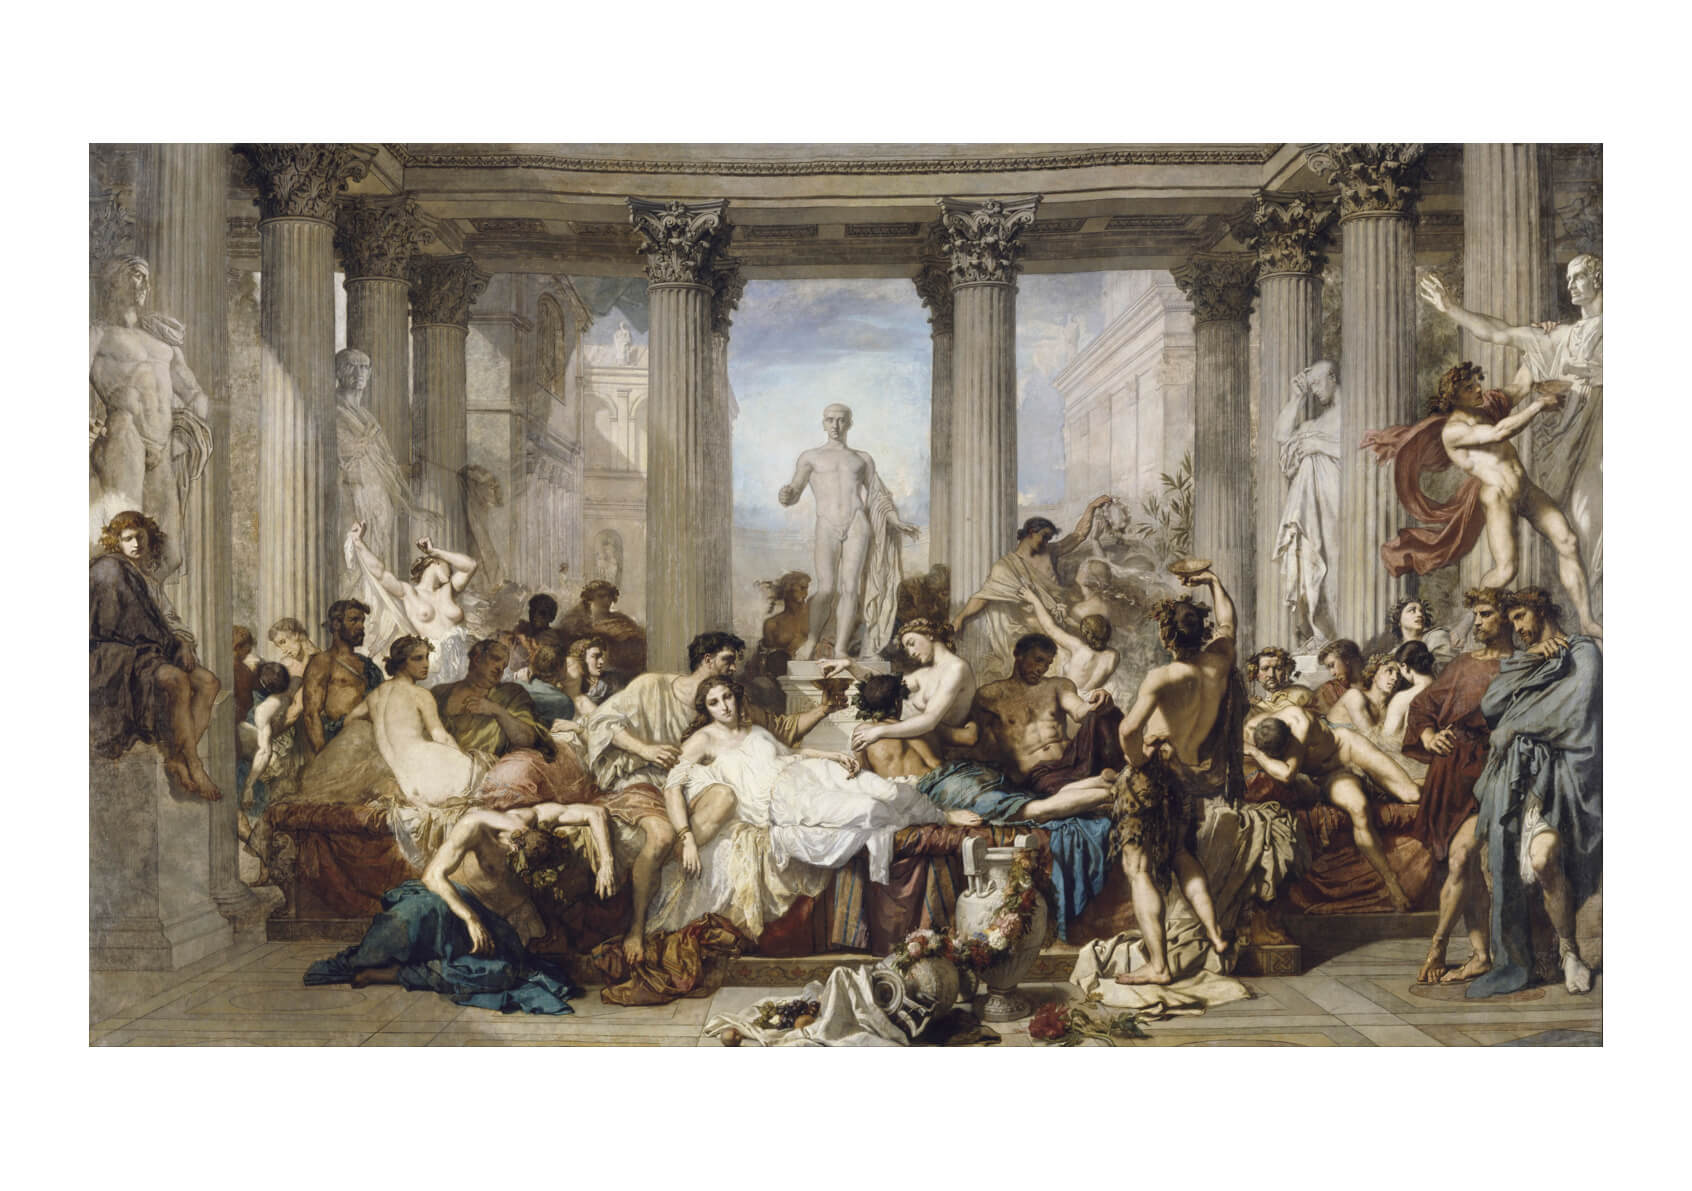 Thomas Couture - Romans during the Decadence